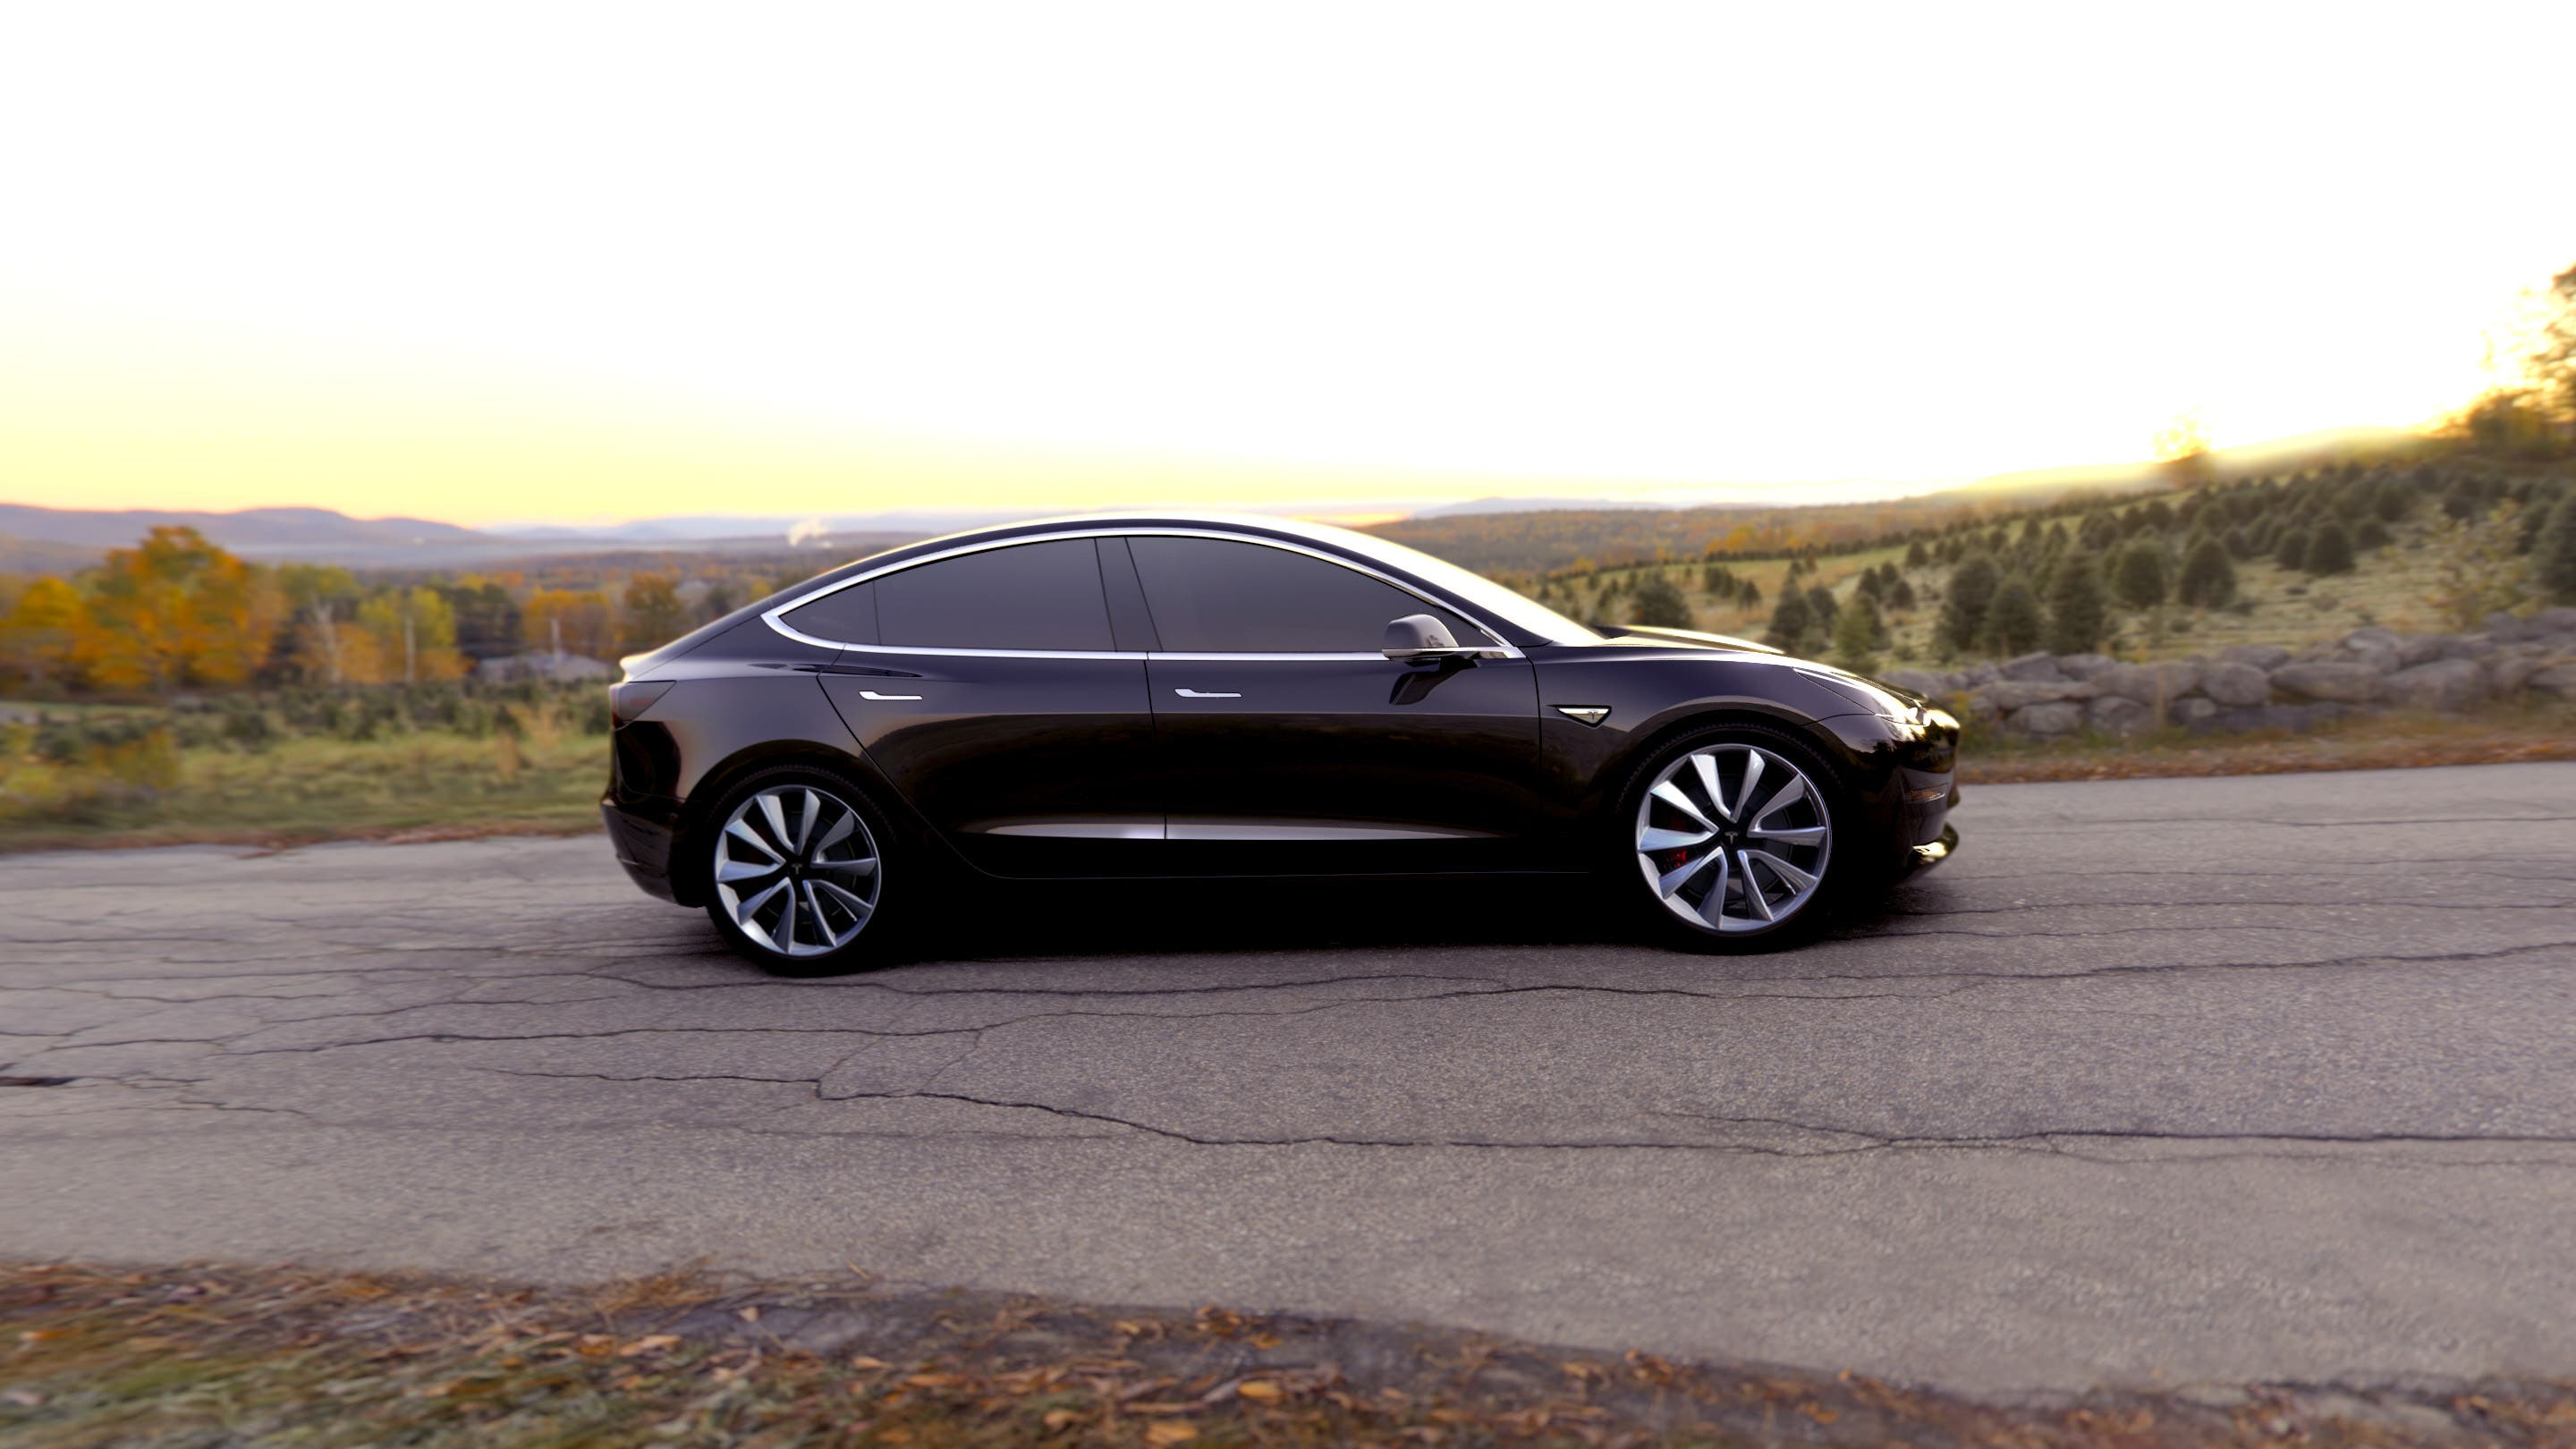 Elon Musk Shares Model 3 Details in Twitter Rampage | CleanTechnica